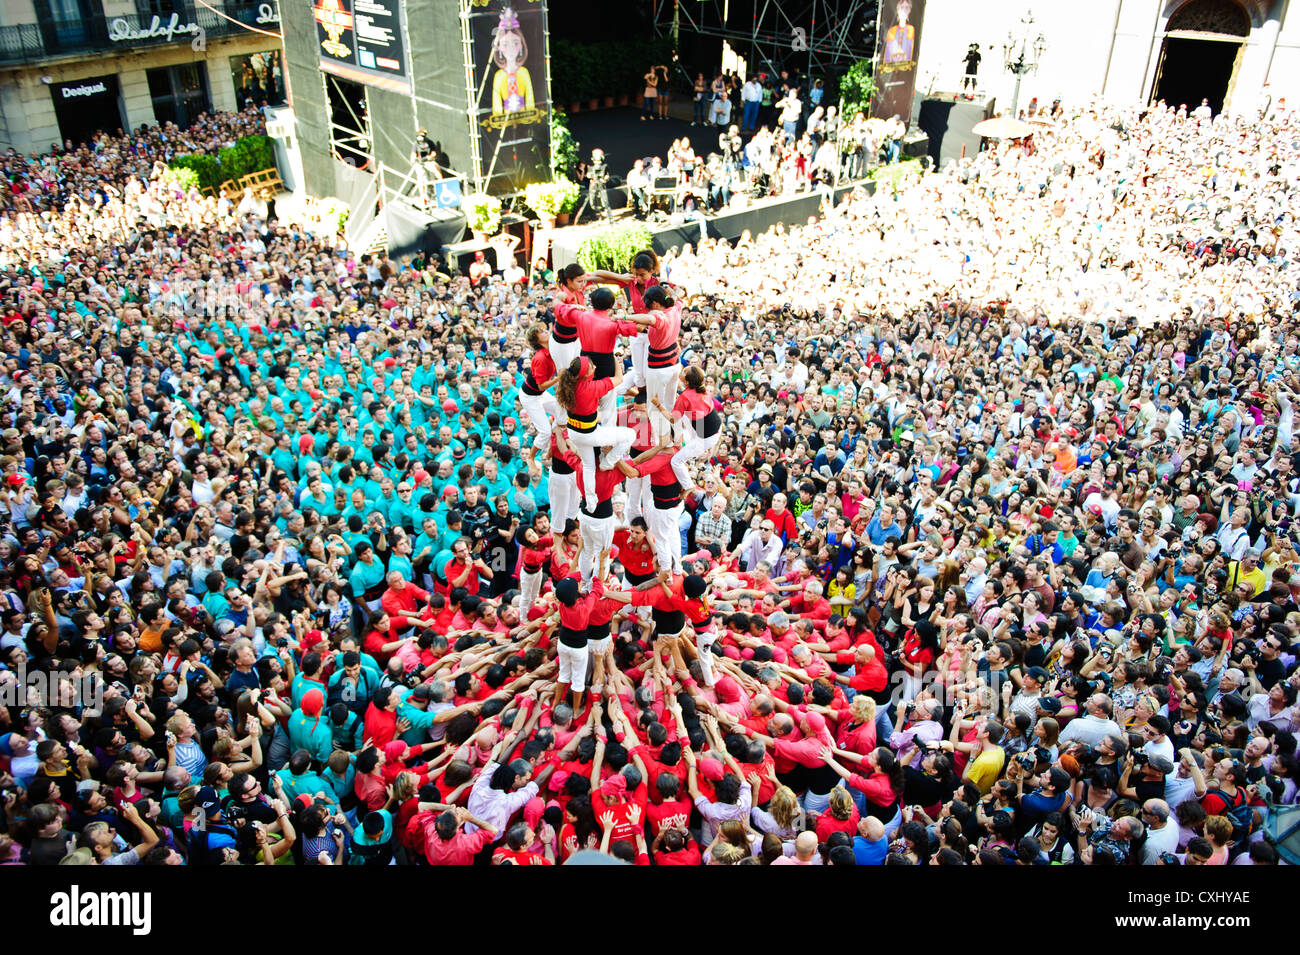 Castellers (Human Castles) at the St. Jaume Square for the last day of 'La Merce' Festival in Barcelona, - Stock Image